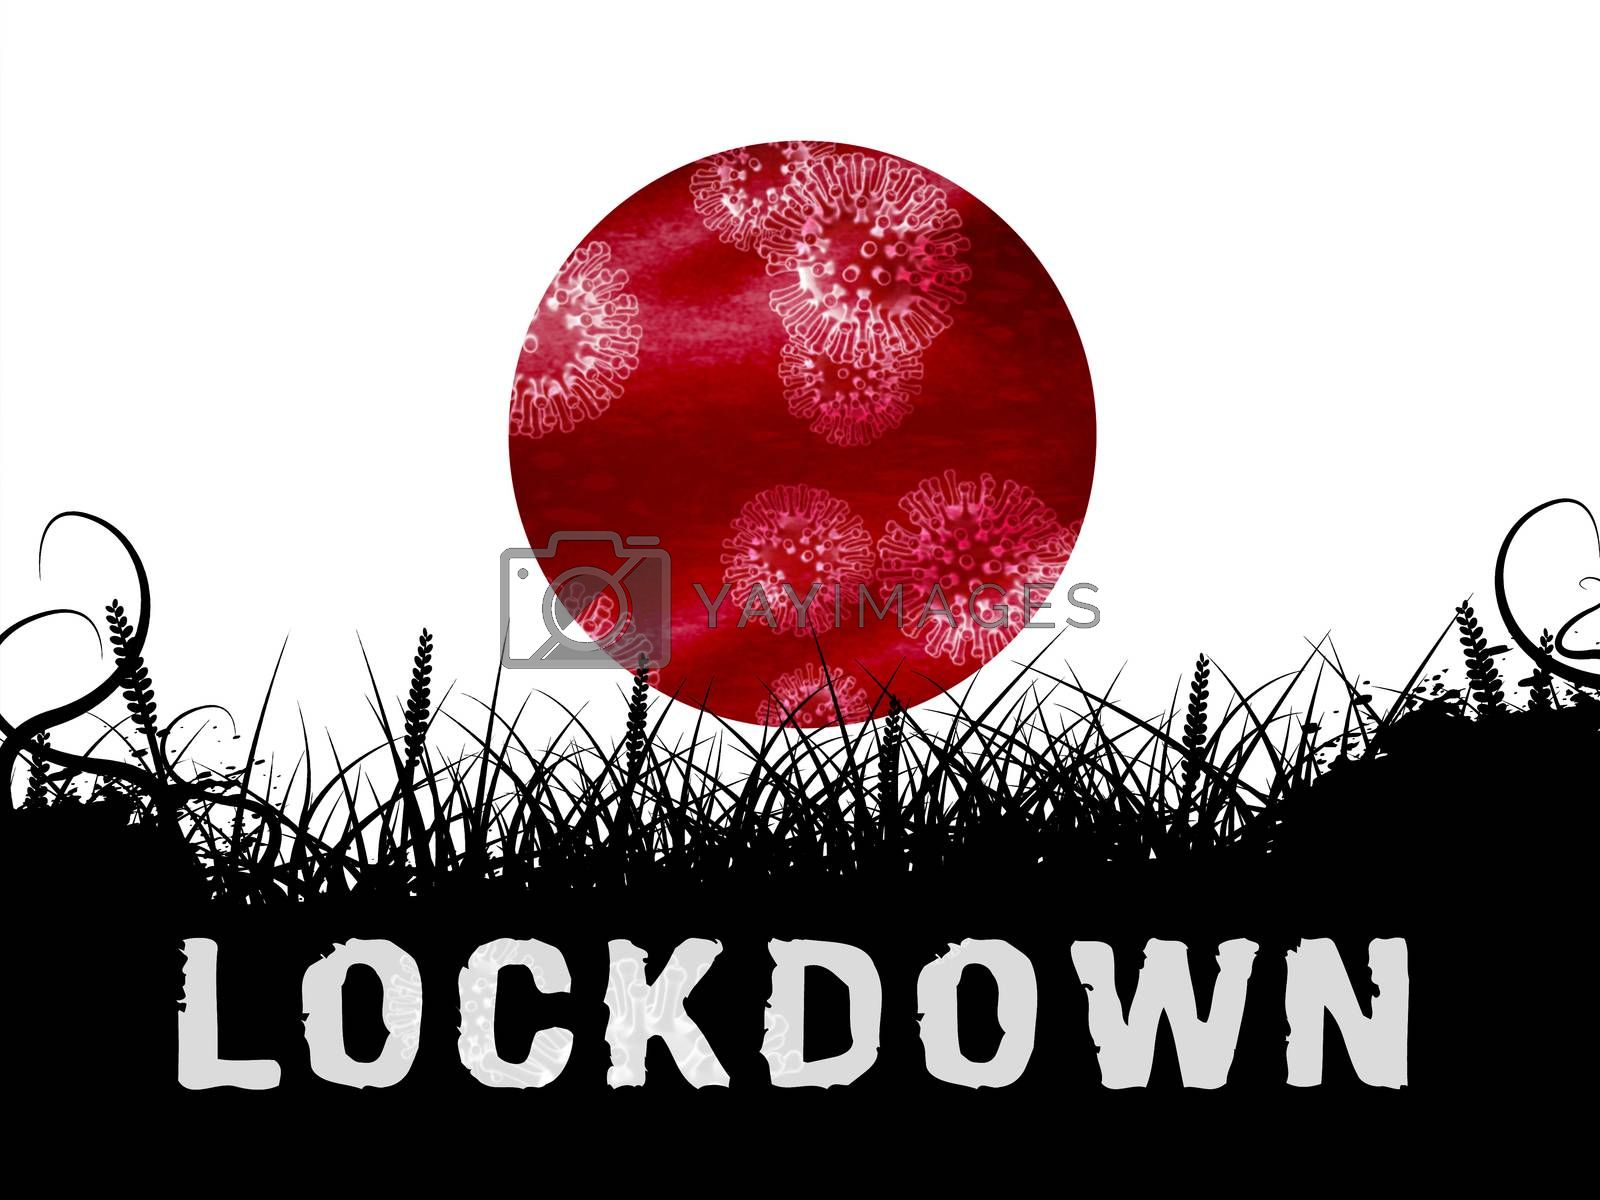 Japan lockdown slowing ncov epidemic or outbreak - 3d Illustrati by stuartmiles